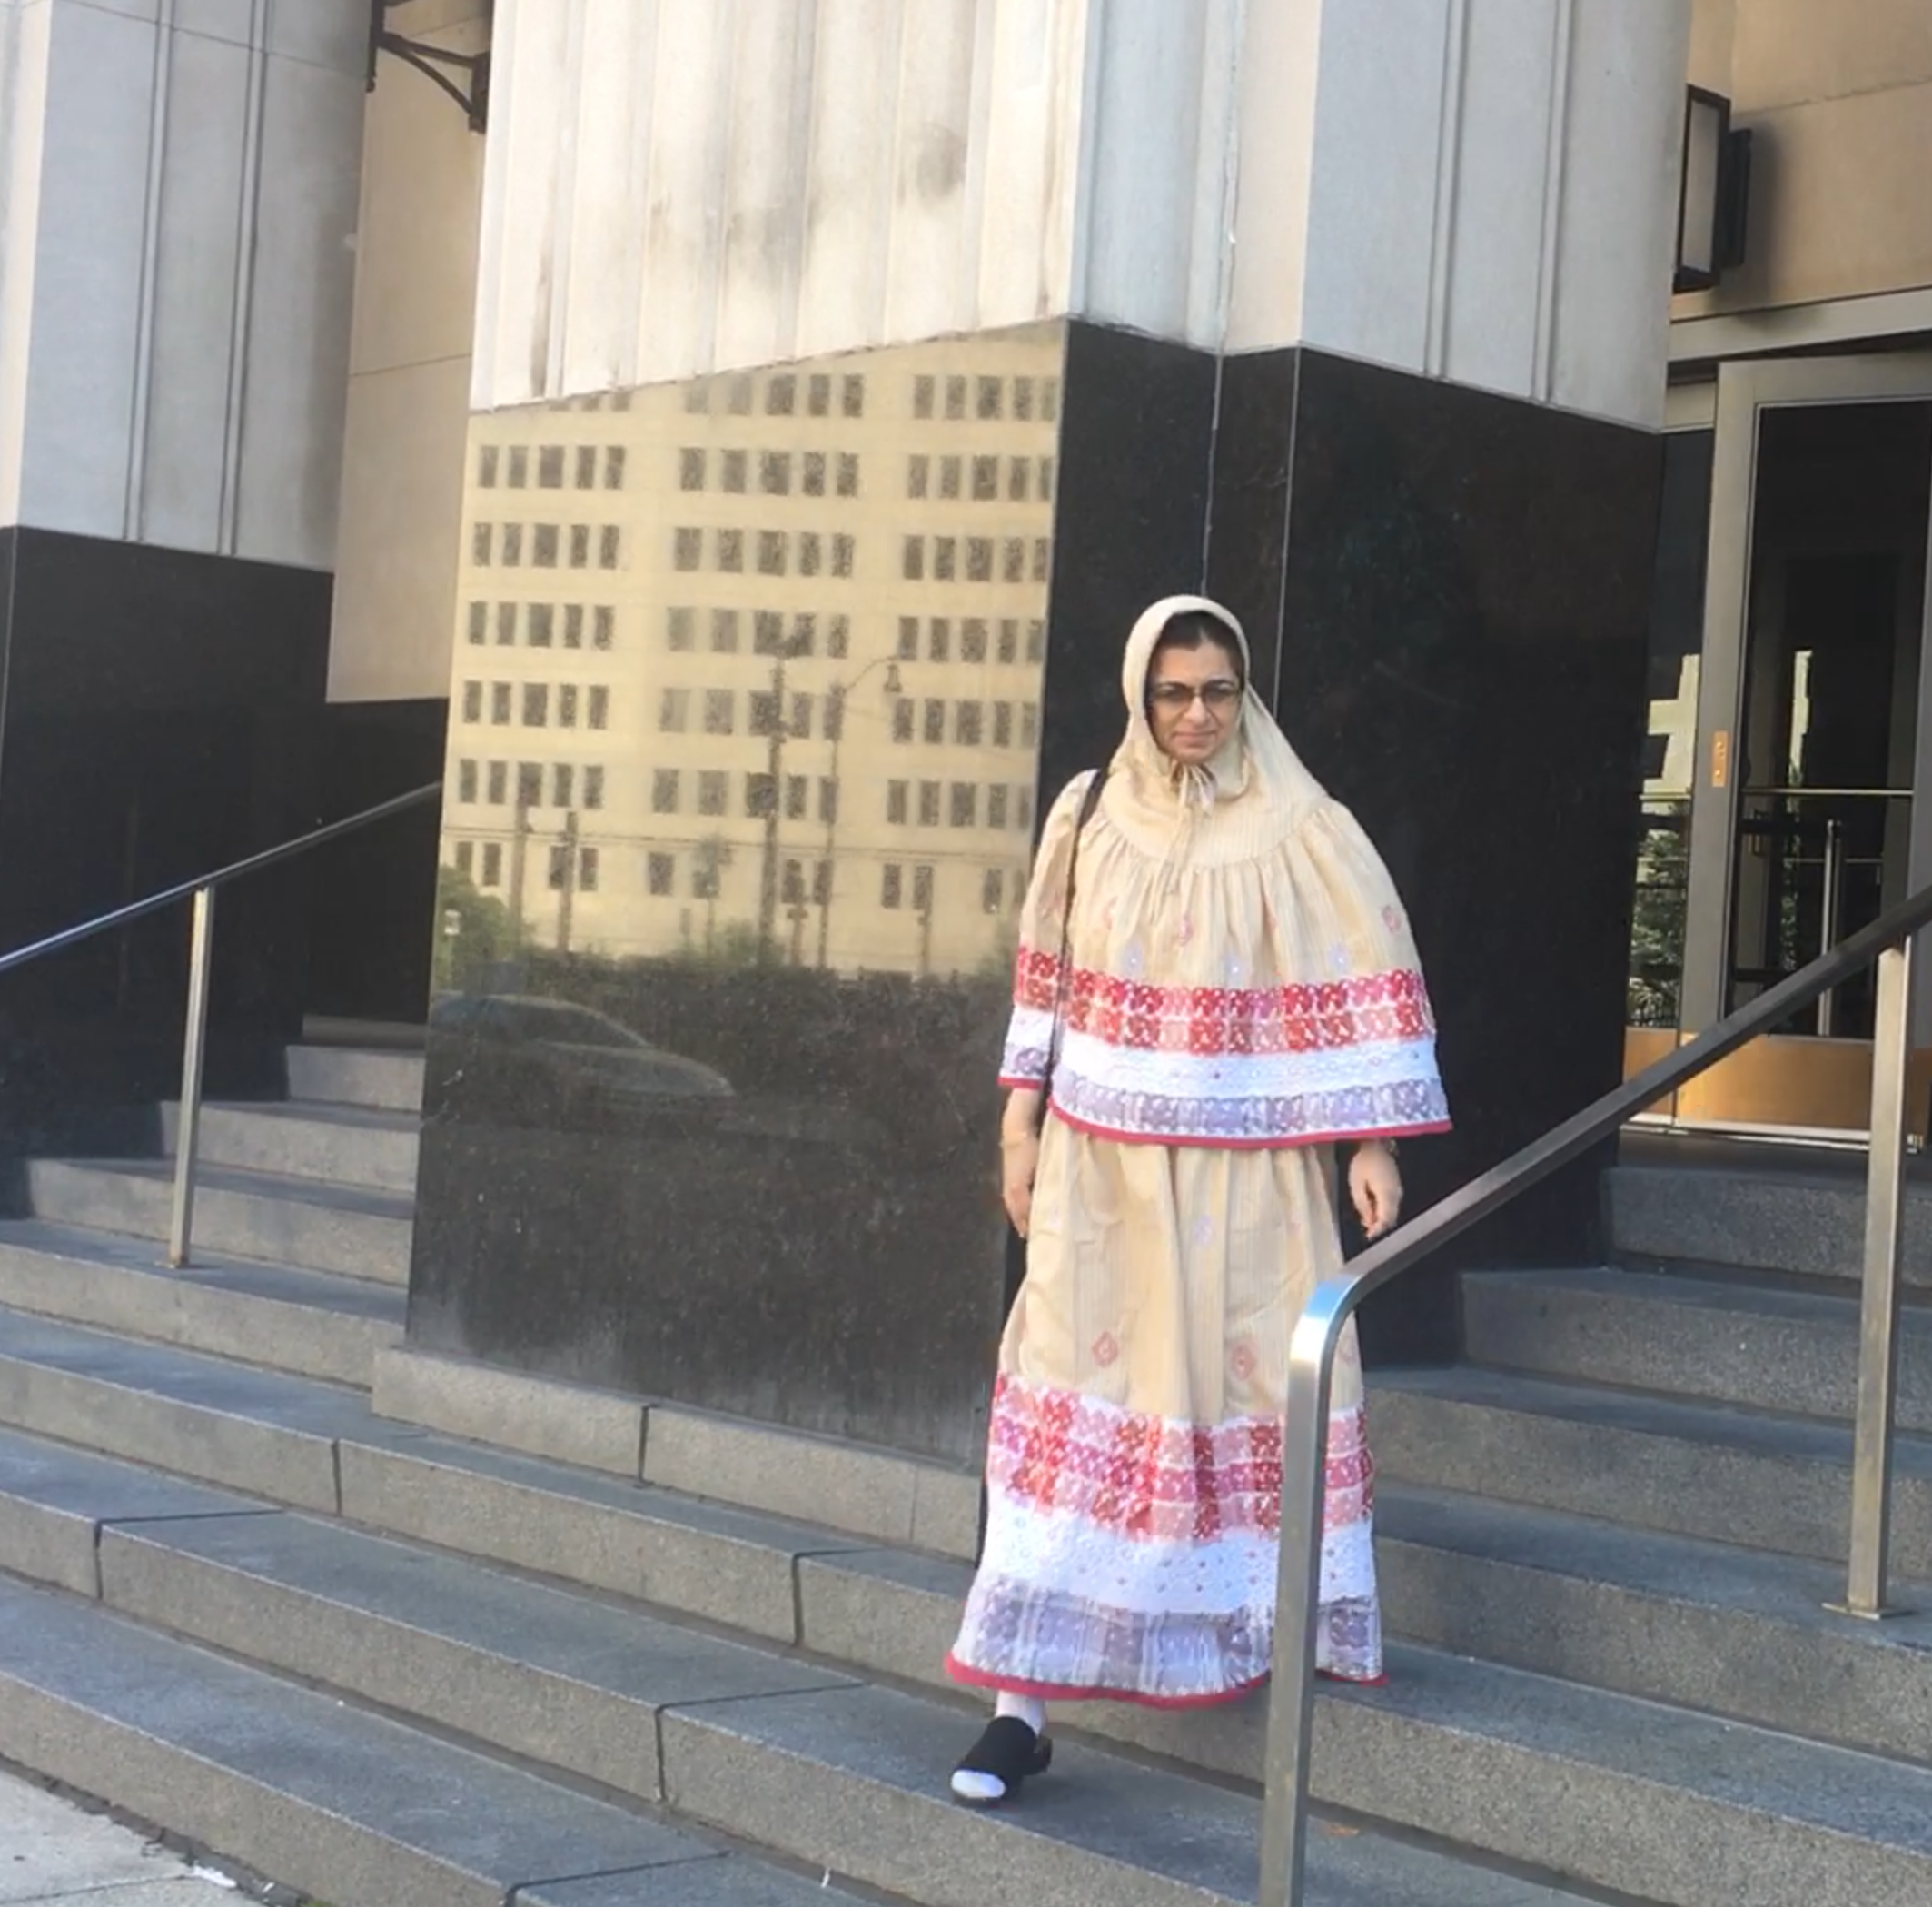 Genital mutilation ban ruled unconstitutional; judge drops charges against sect